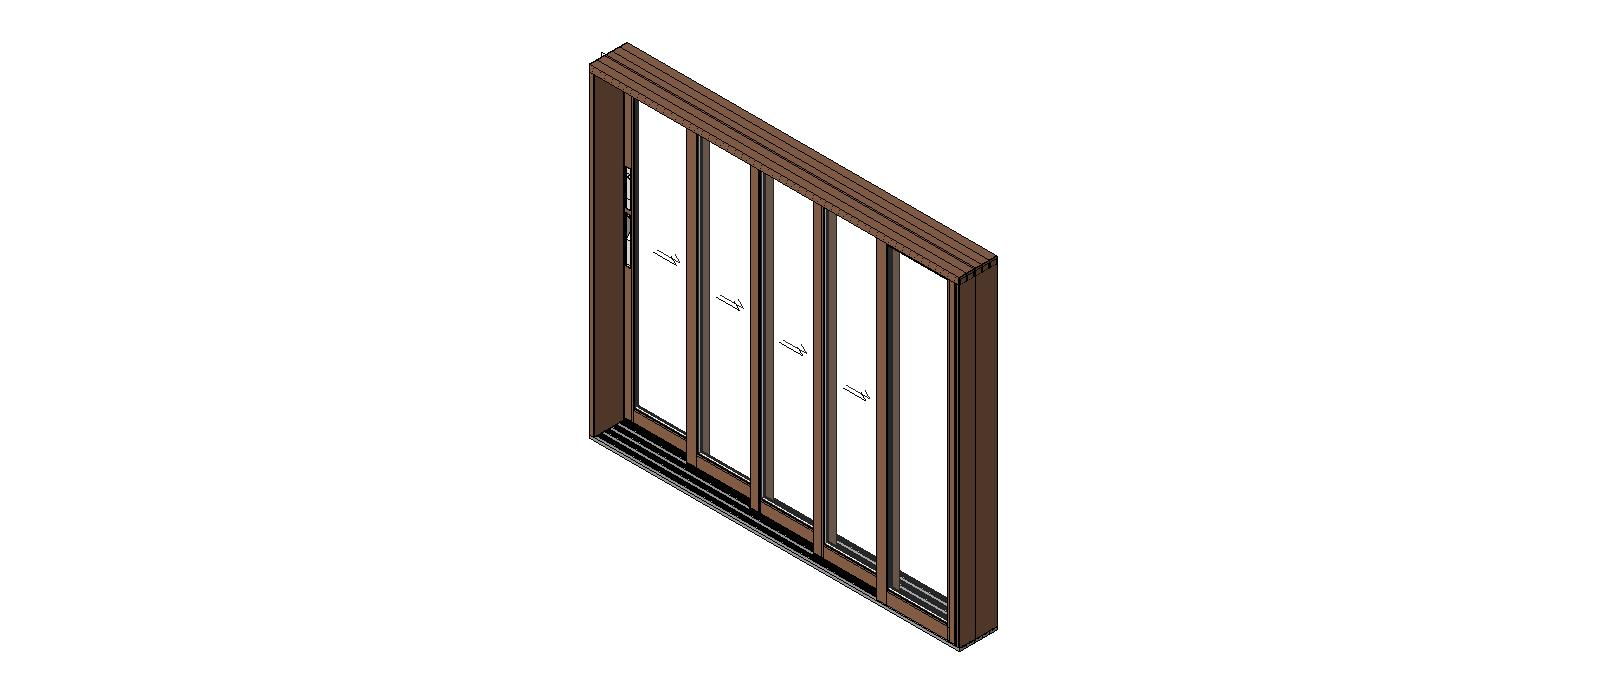 Western window systems aluminum windows bim objects families for Multiple sliding glass doors